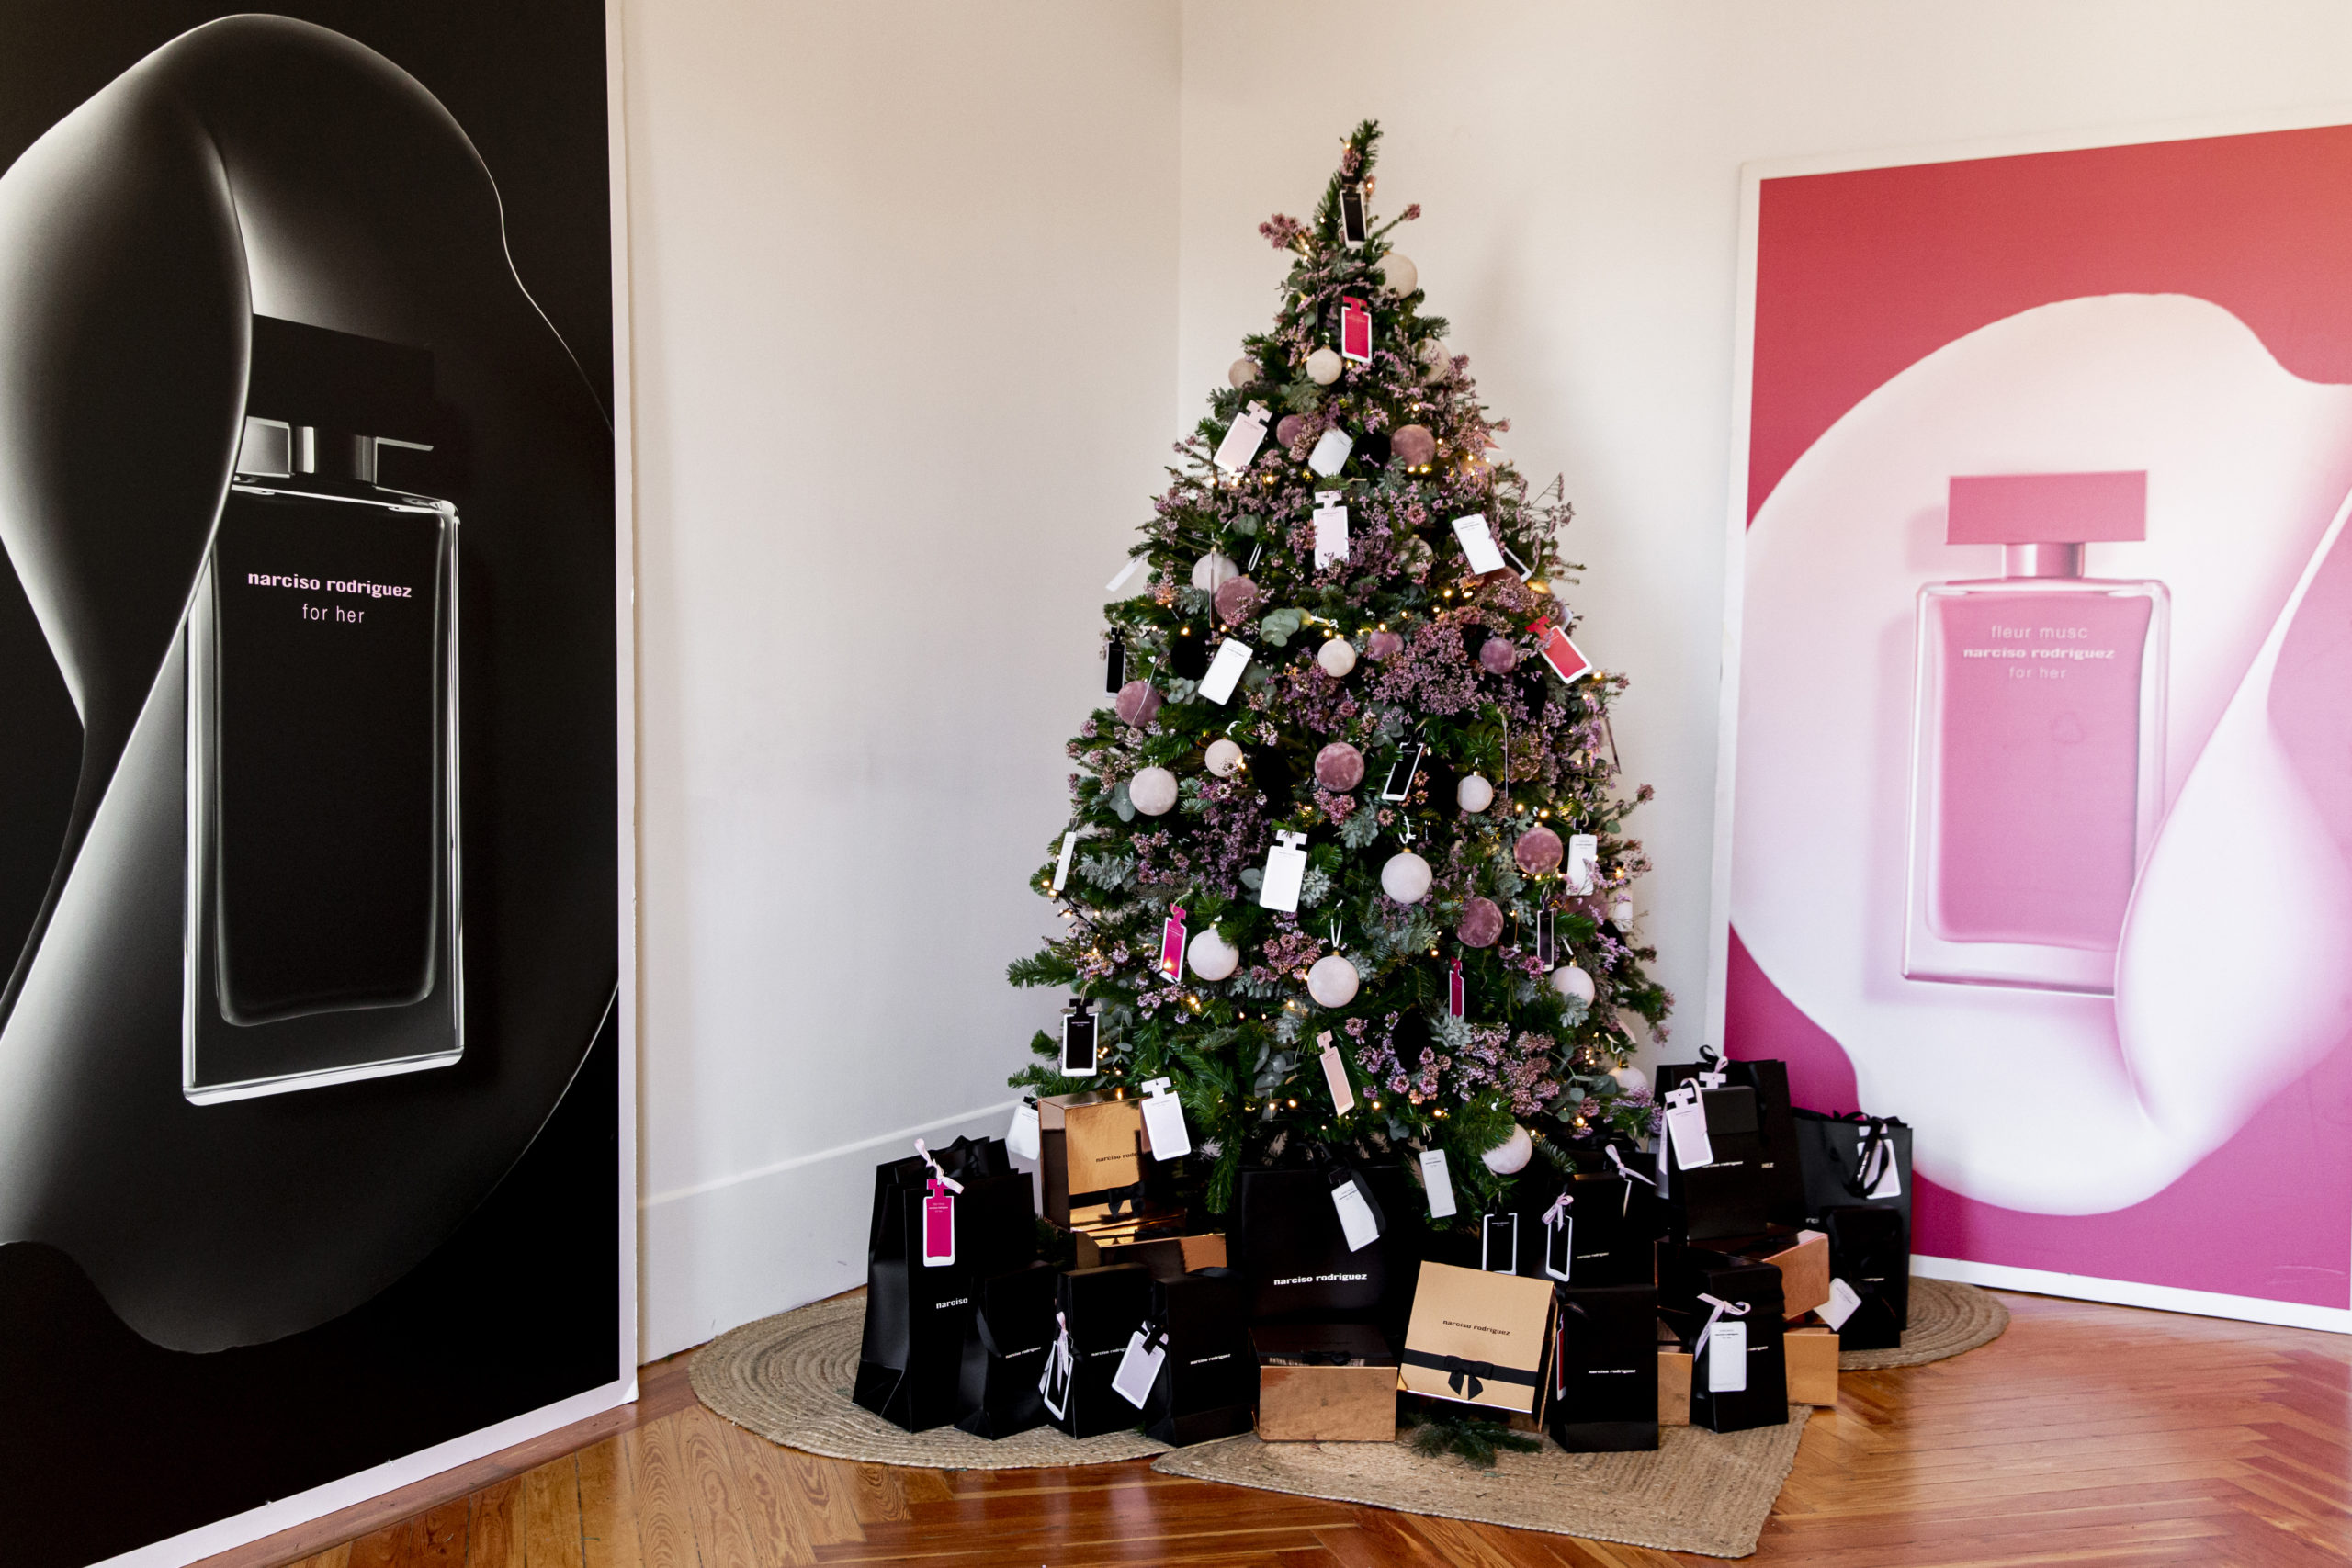 Asistimos a #NarcisoRodriguezParfums for her Xmas Wrapping Workshop